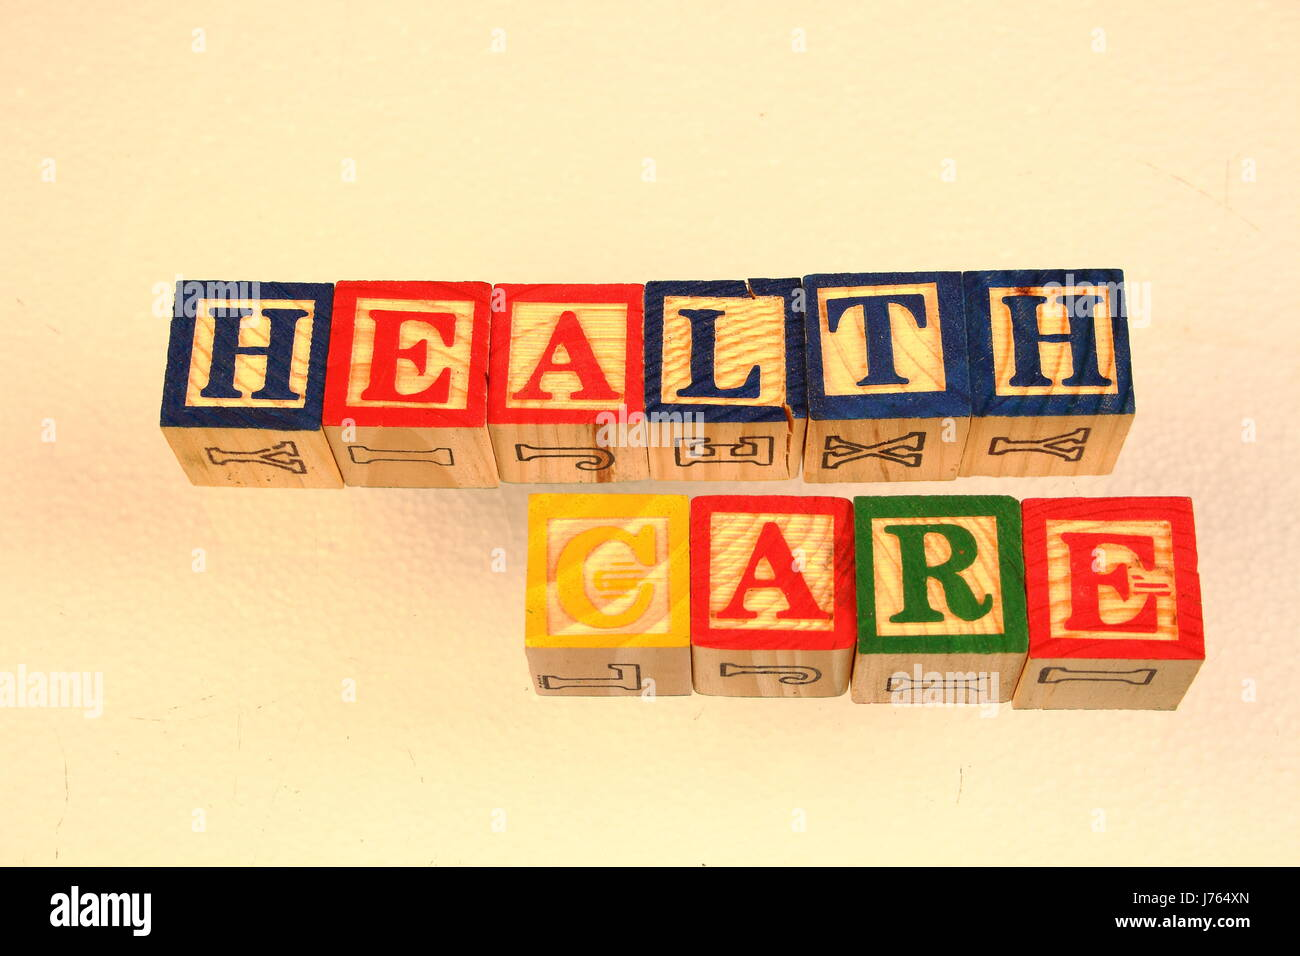 The term health care visually displayed using colorful wooden toy blocks Stock Photo